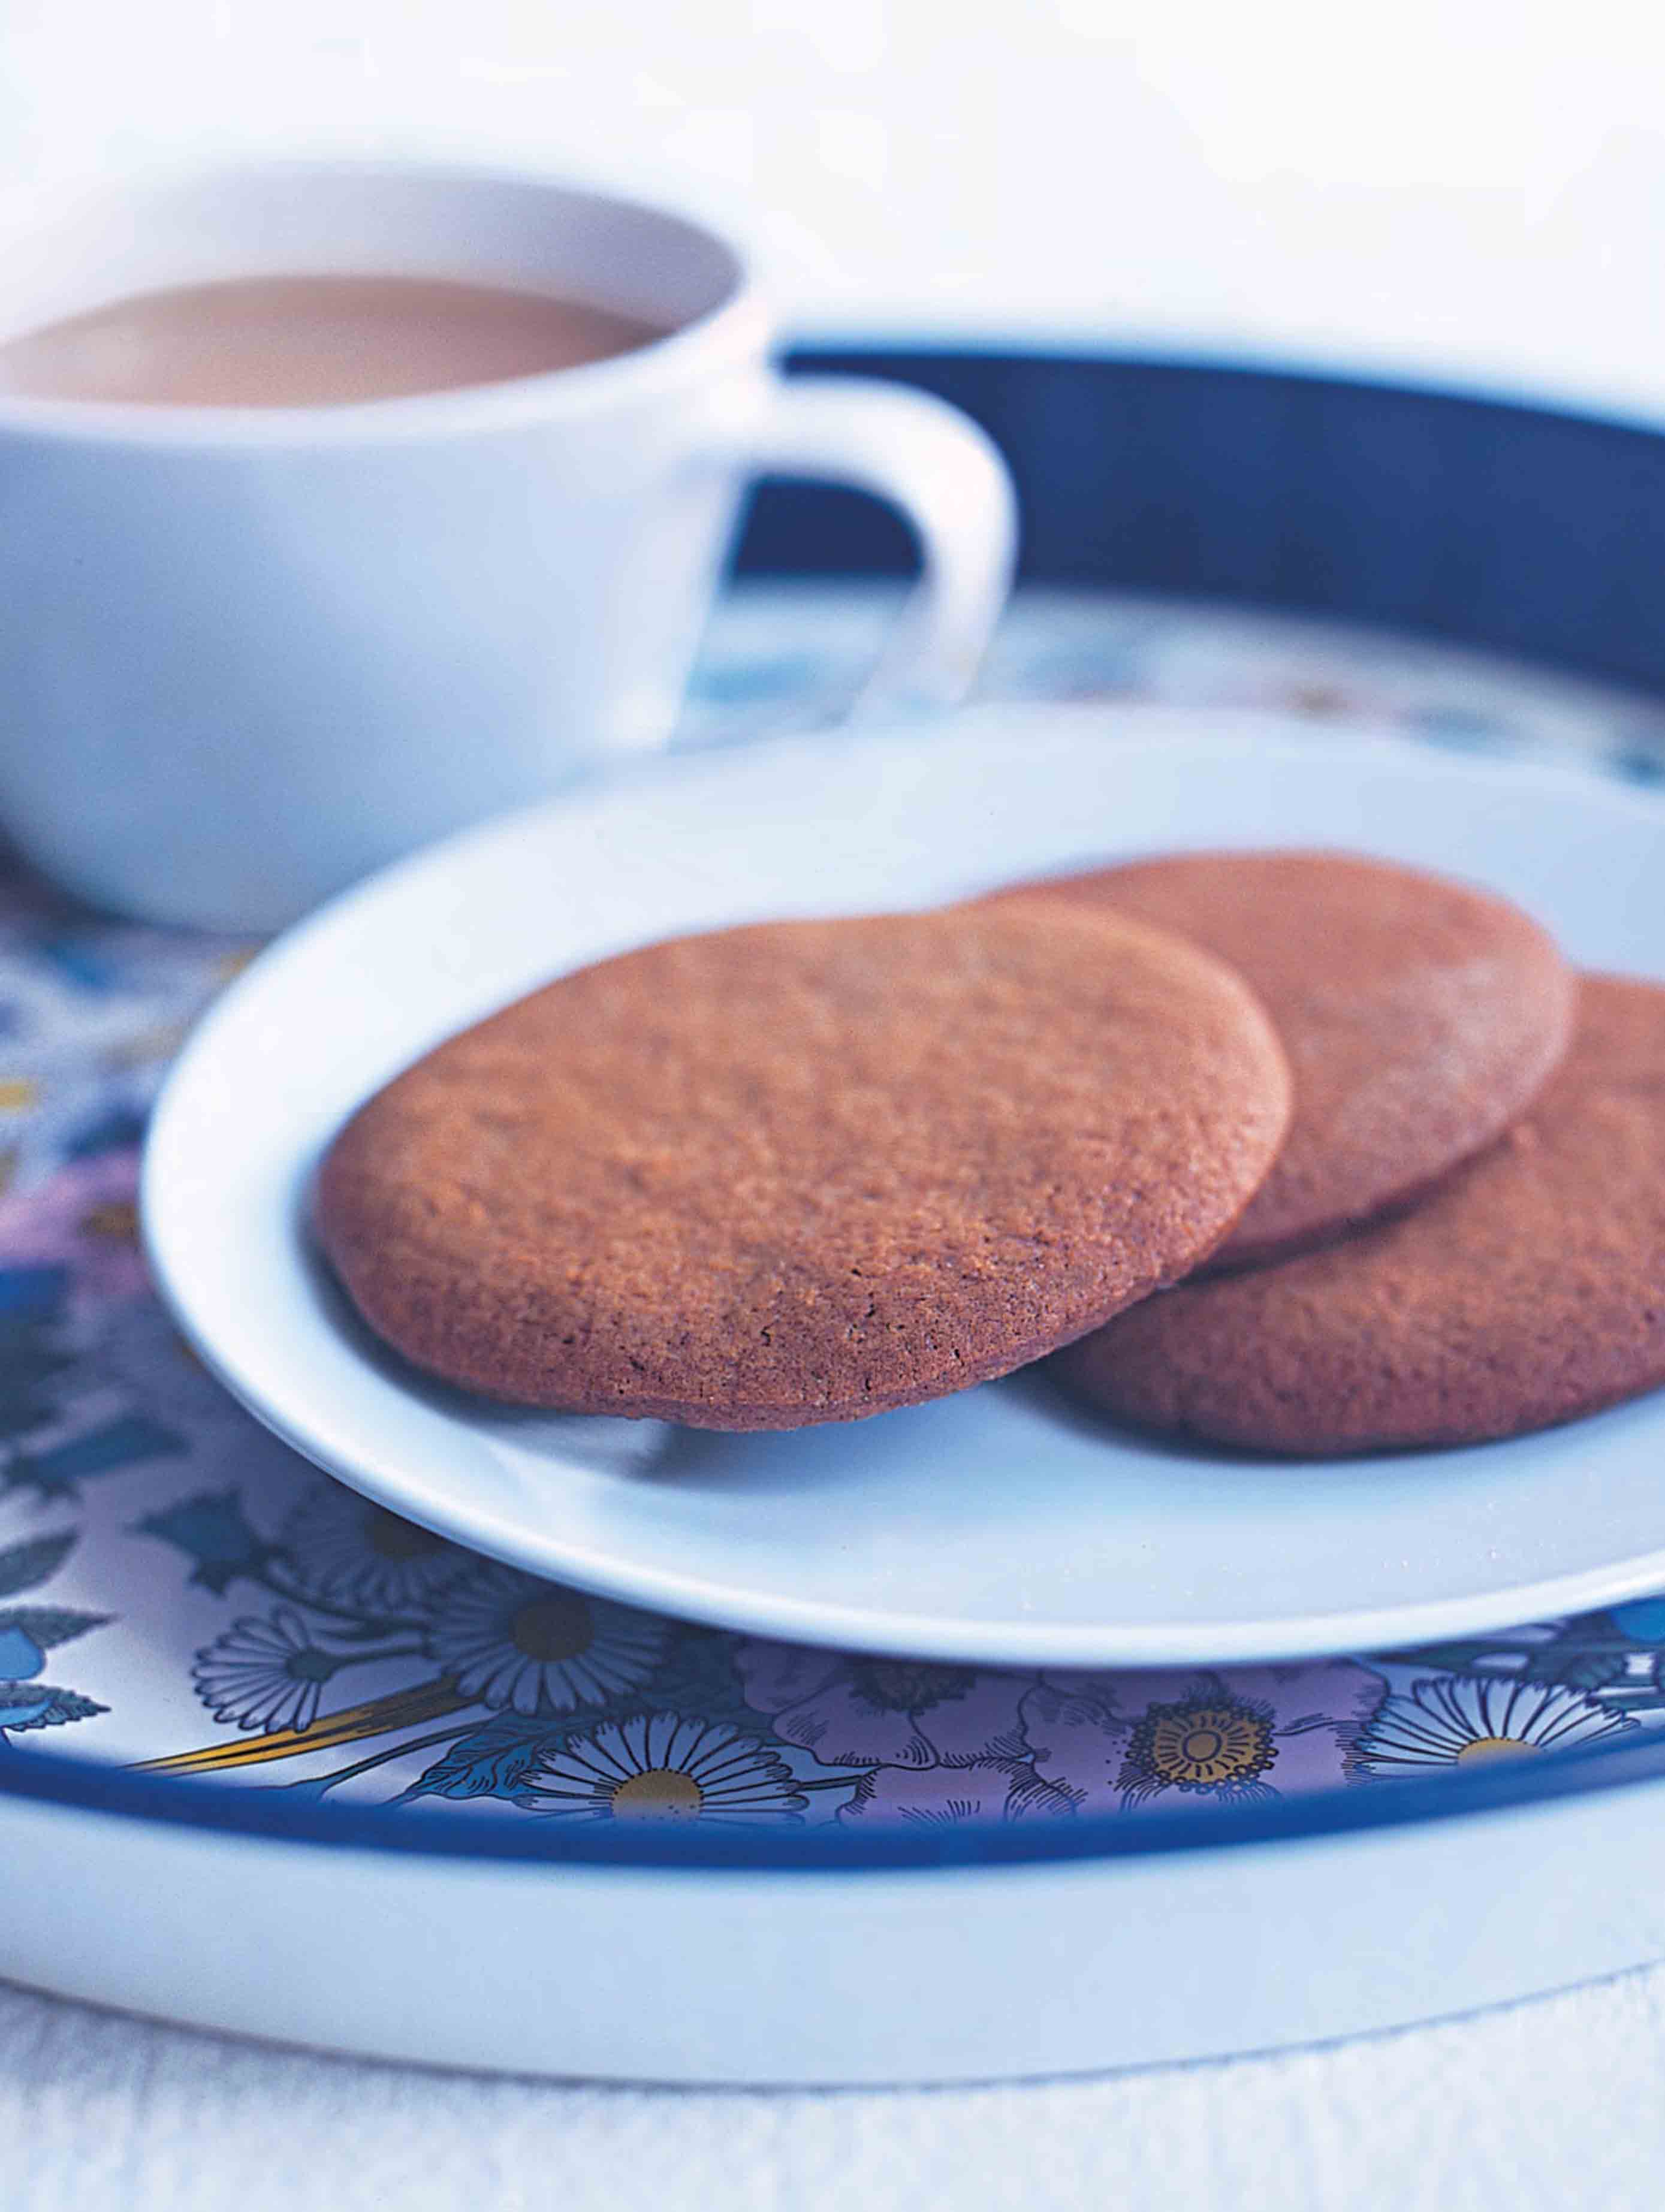 Gingerbread biscuits